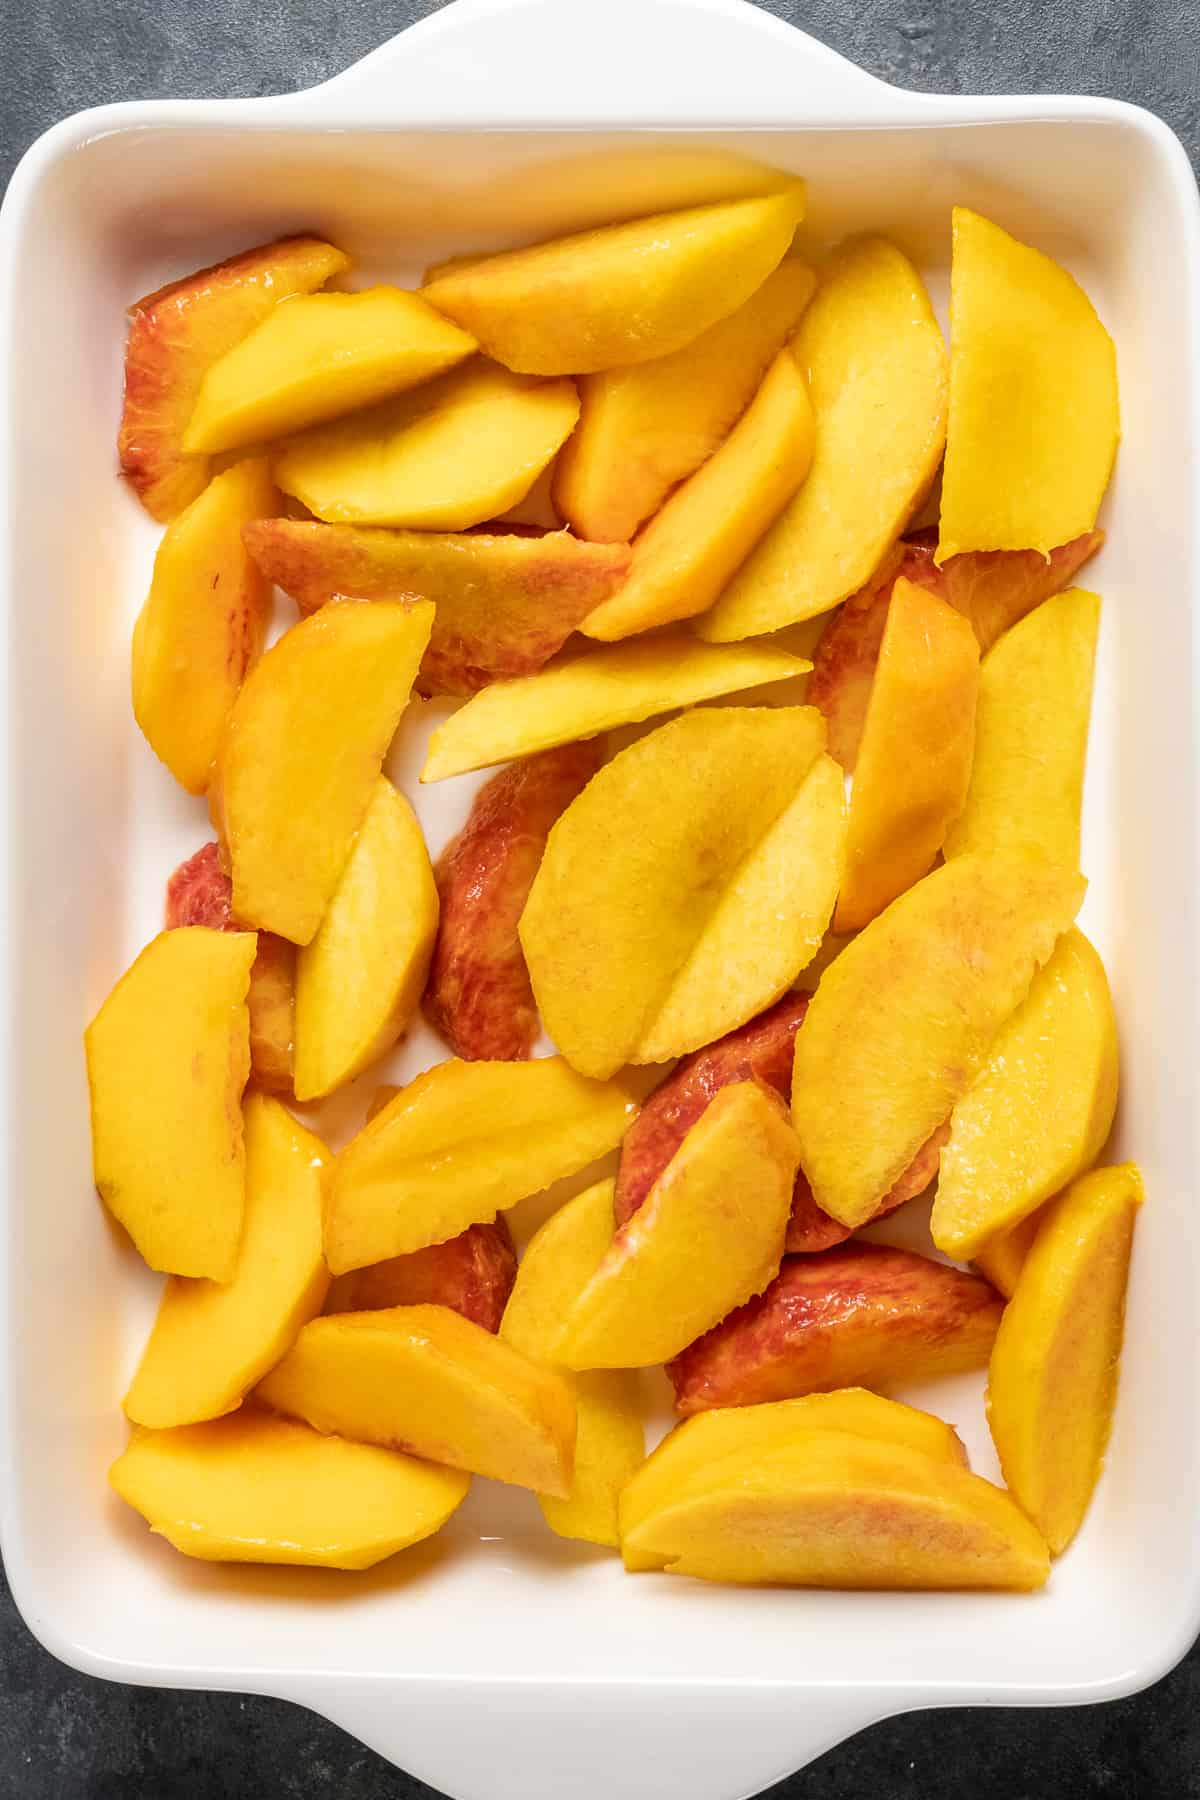 Peach slices covering the bottom of a white rectangular baking pan.